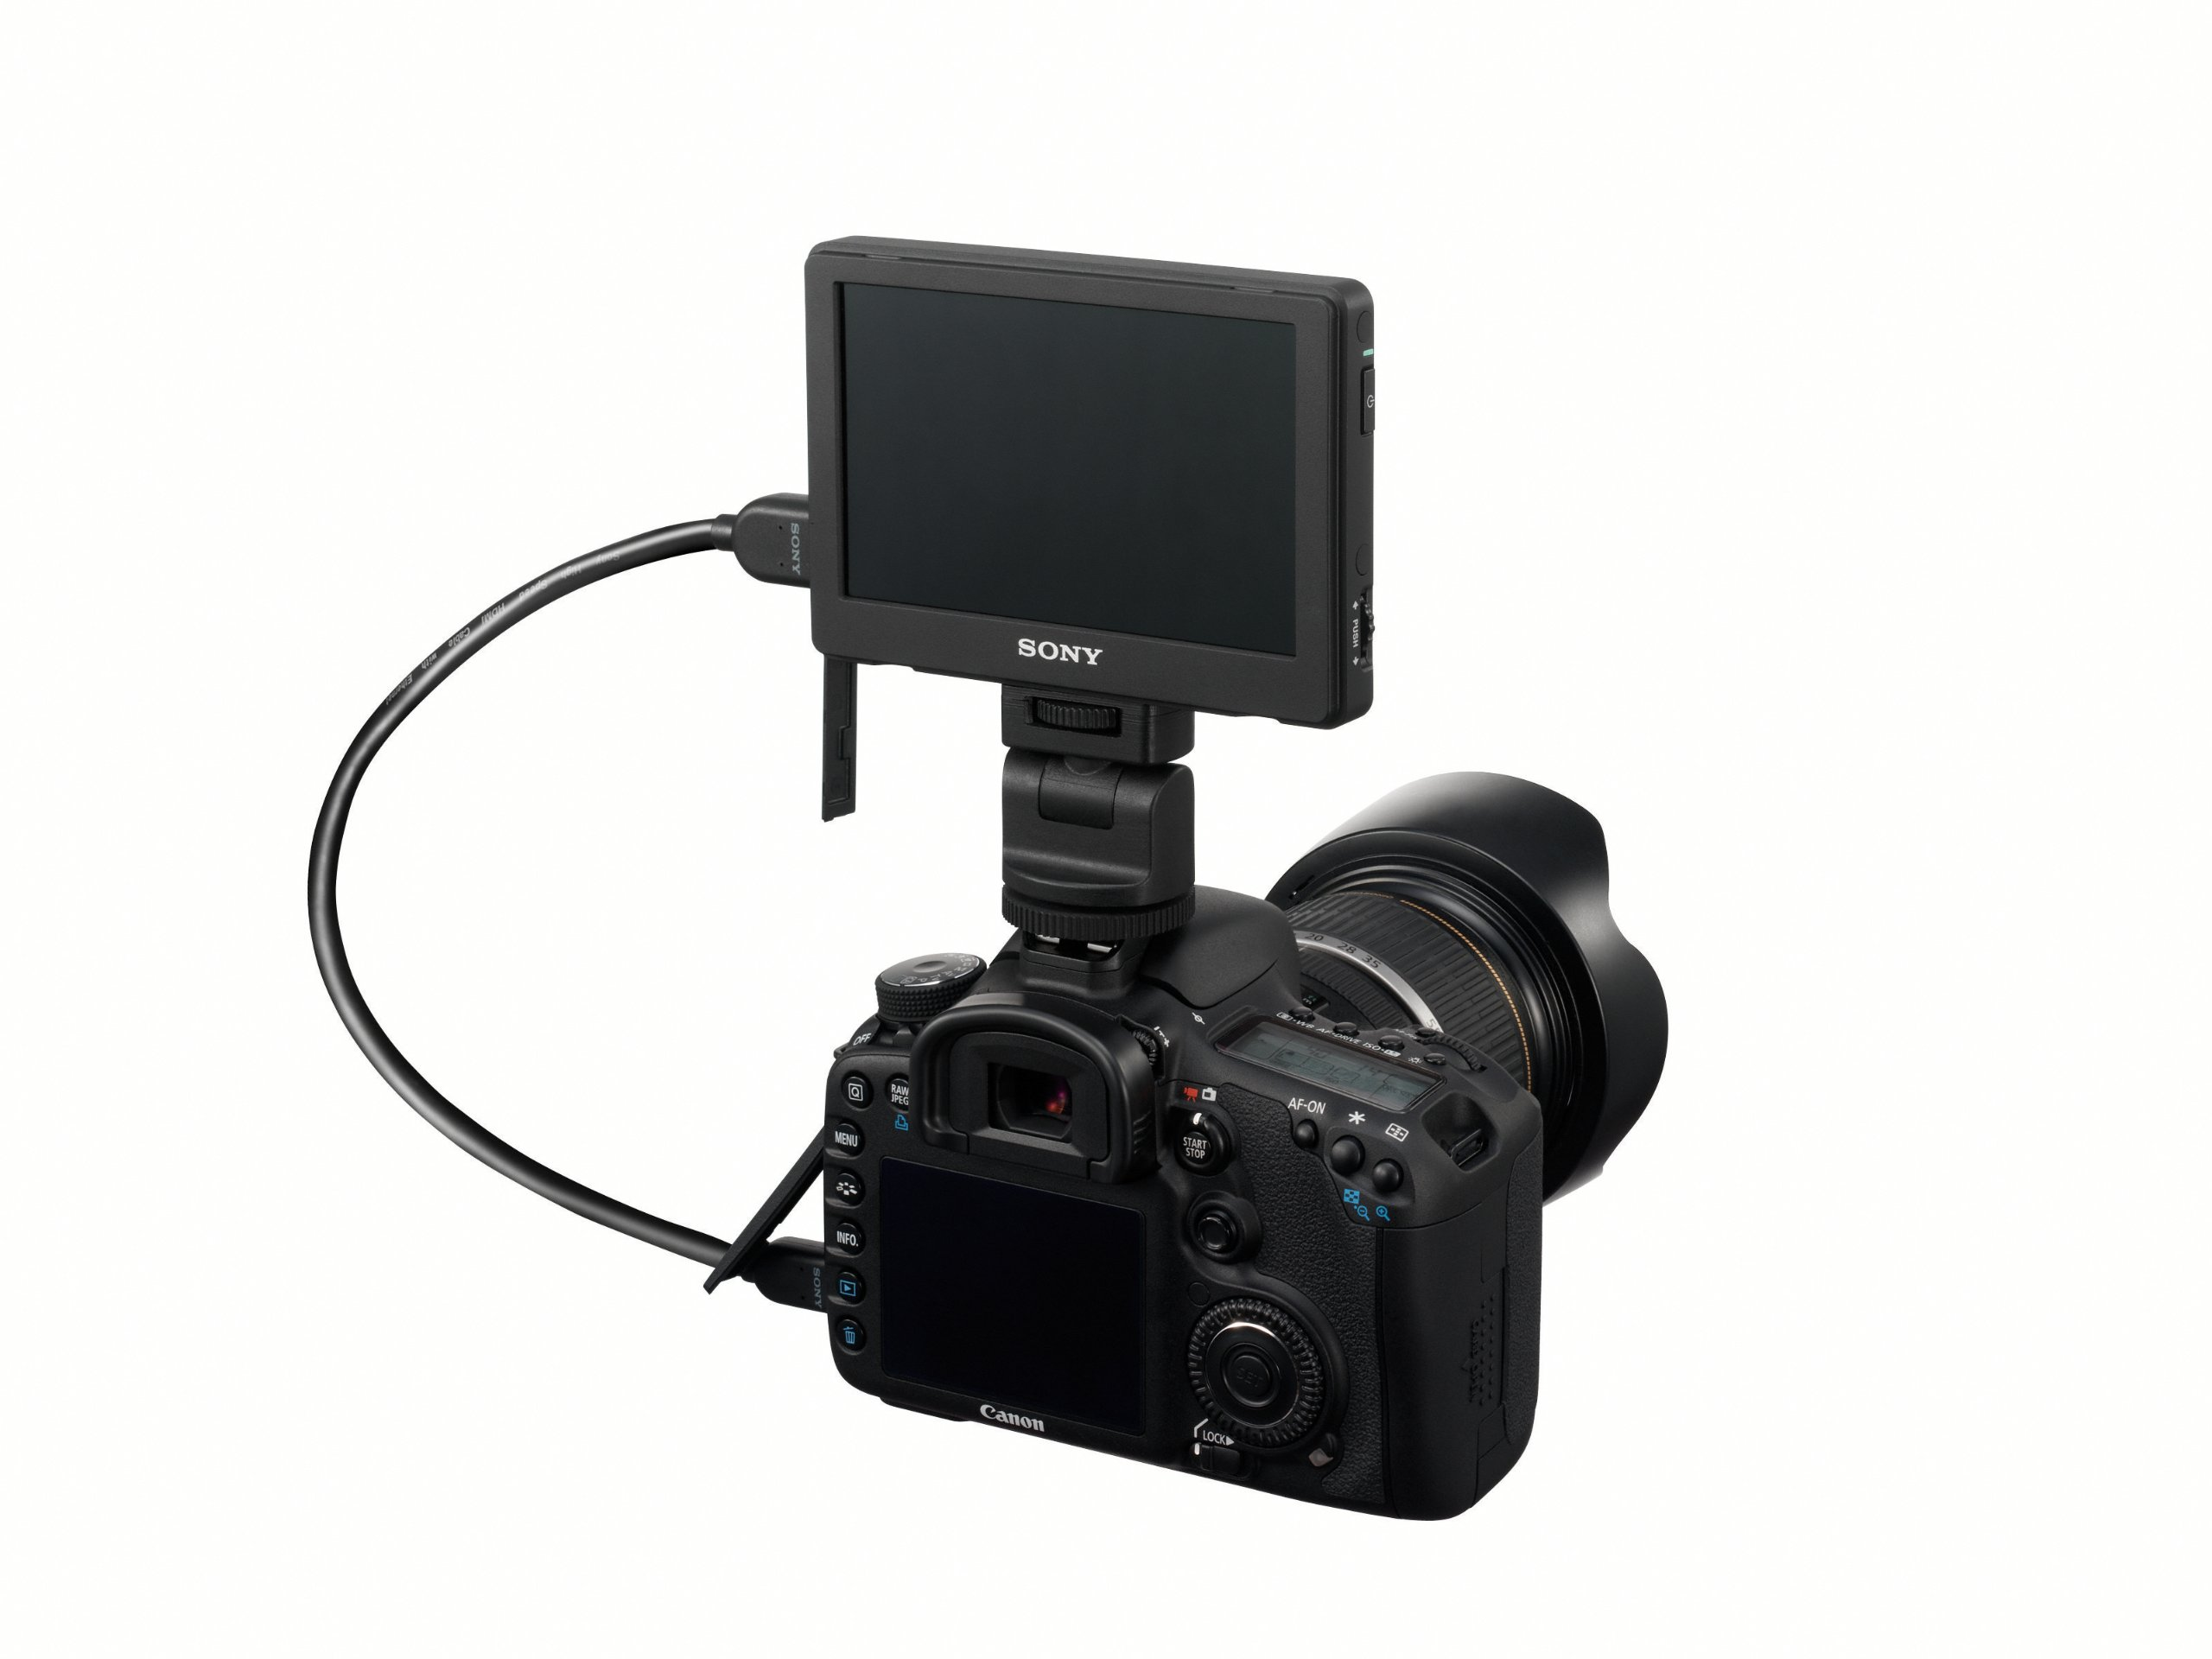 Sony CLM-V55 5-Inch Portable LCD Monitor for DSLR cameras by Sony